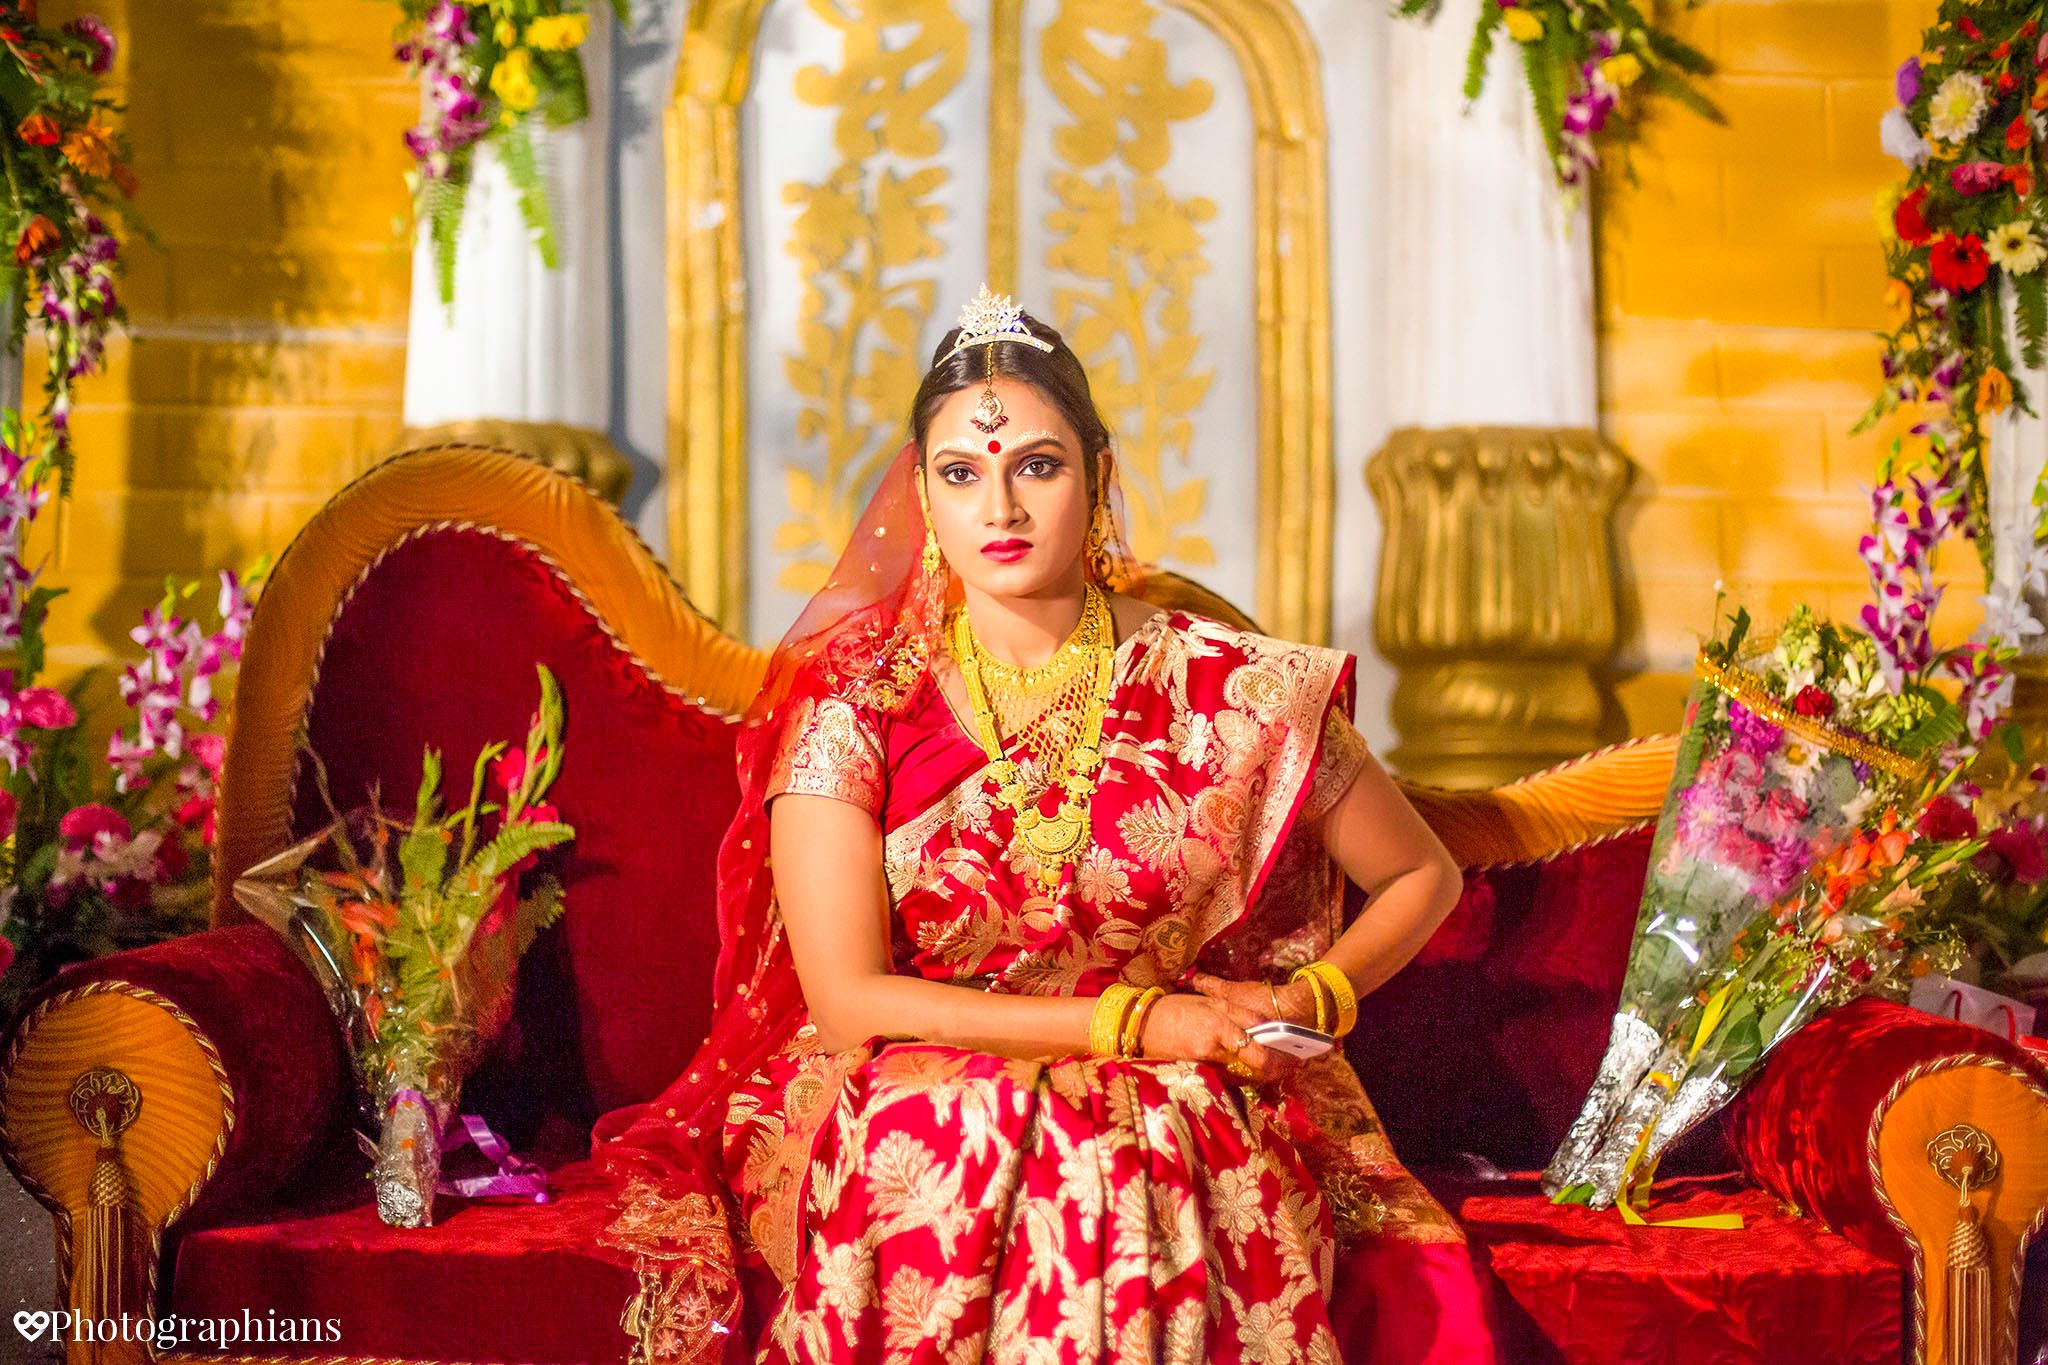 Photographians_Indian_Wedding_Durgapur_023